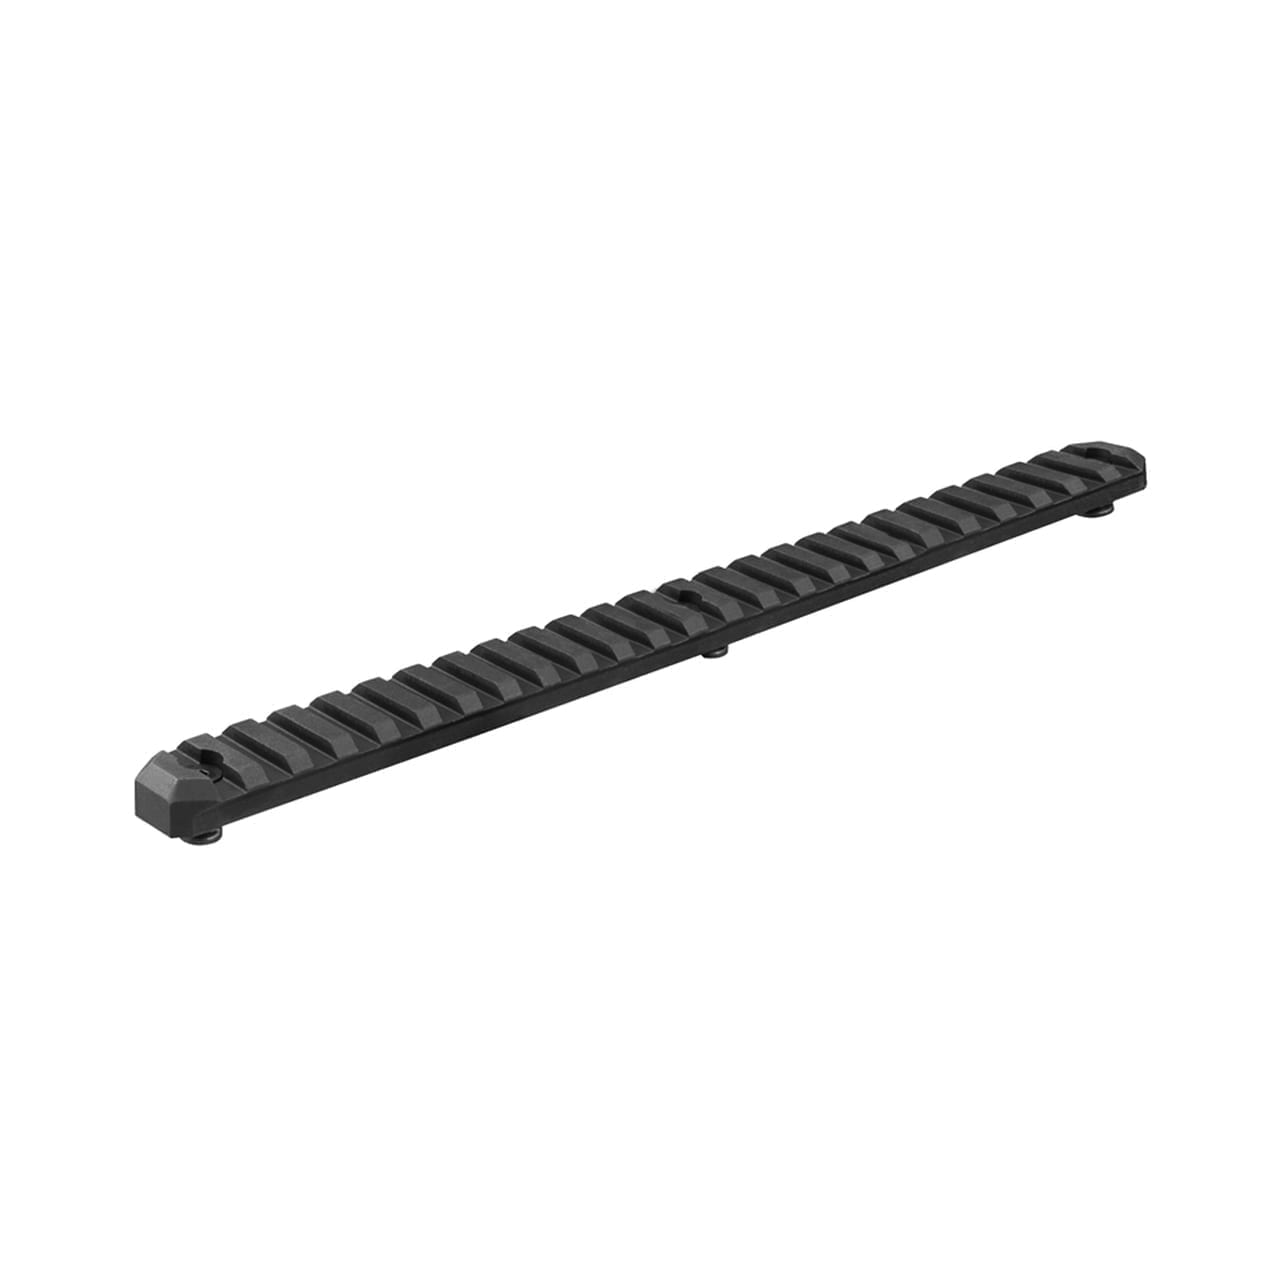 "24 Slot 10"" Picatinny KeyMod Rail Section"